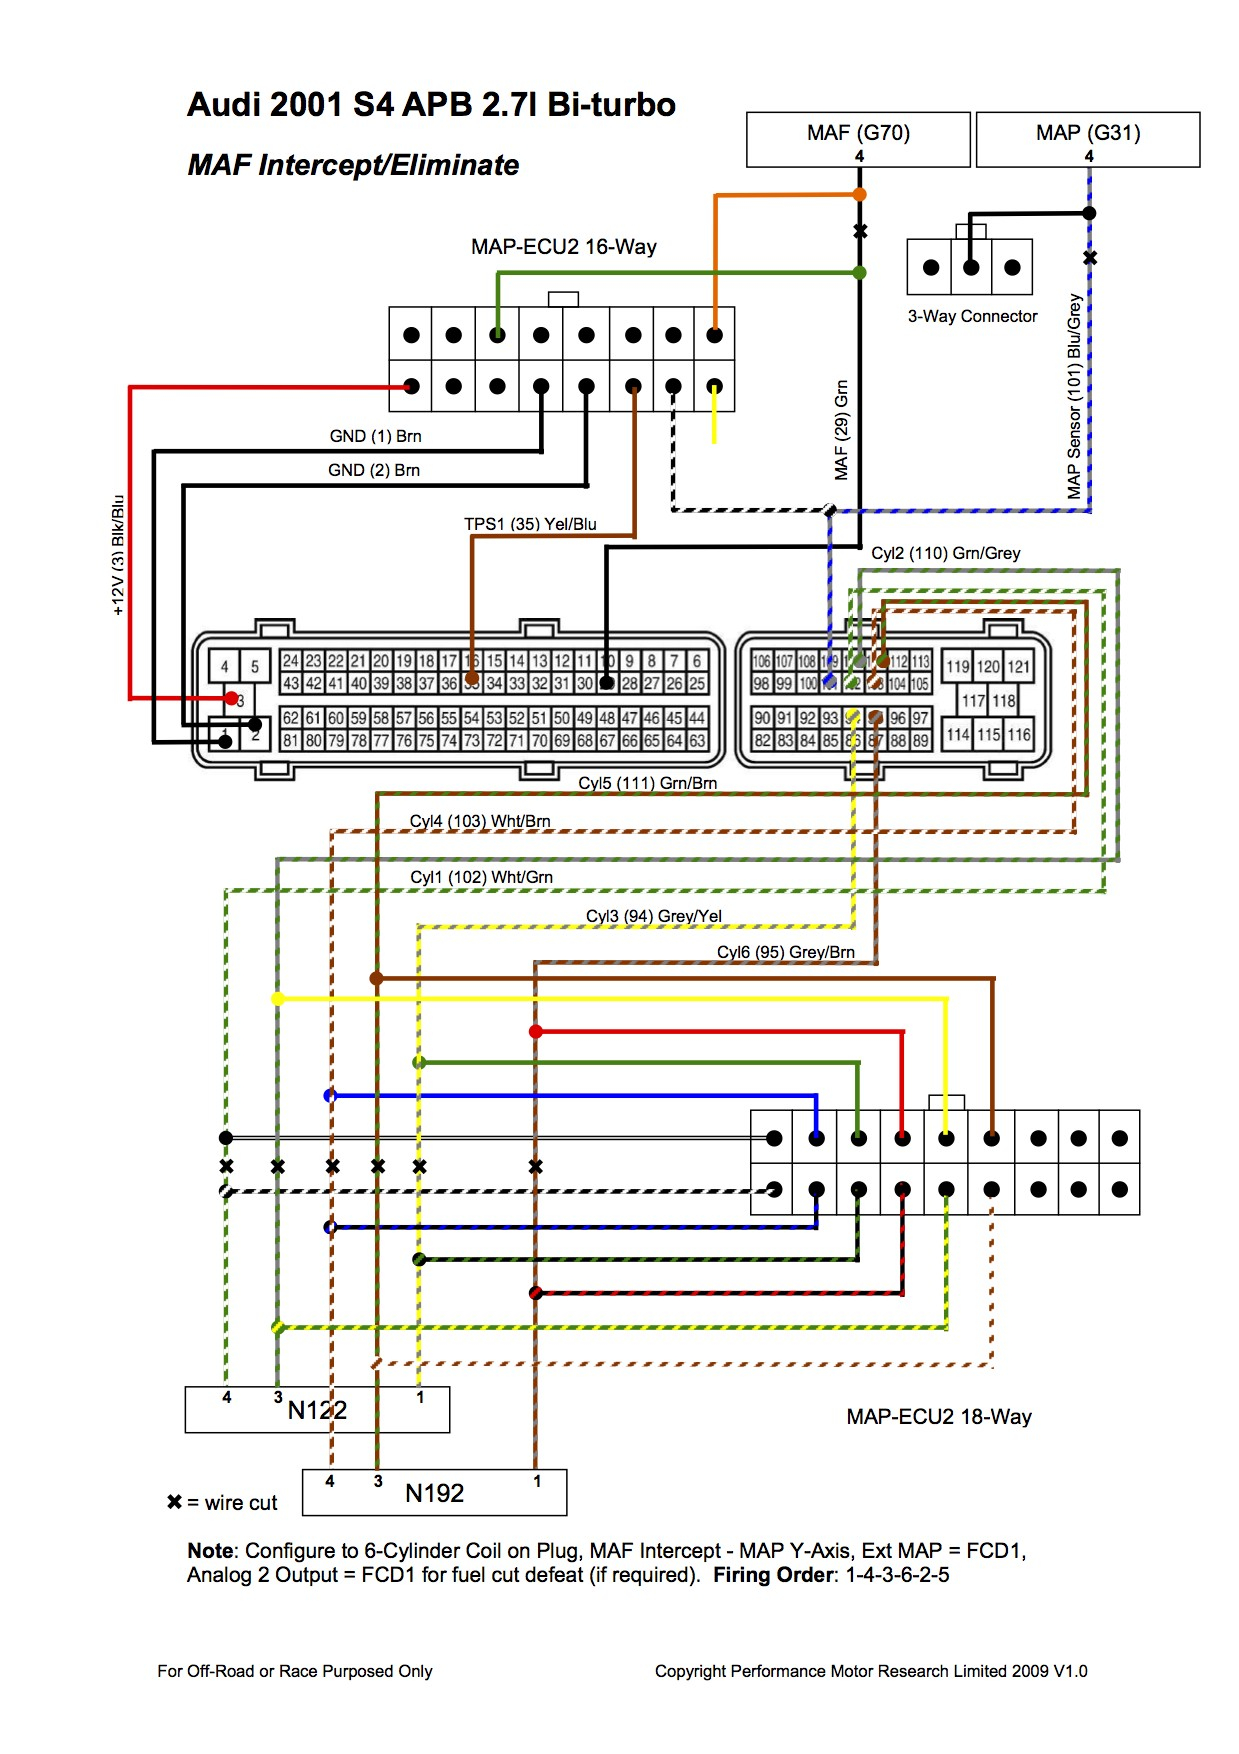 2014 Ram 1500 Radio Wiring Diagram Download | Wiring ...